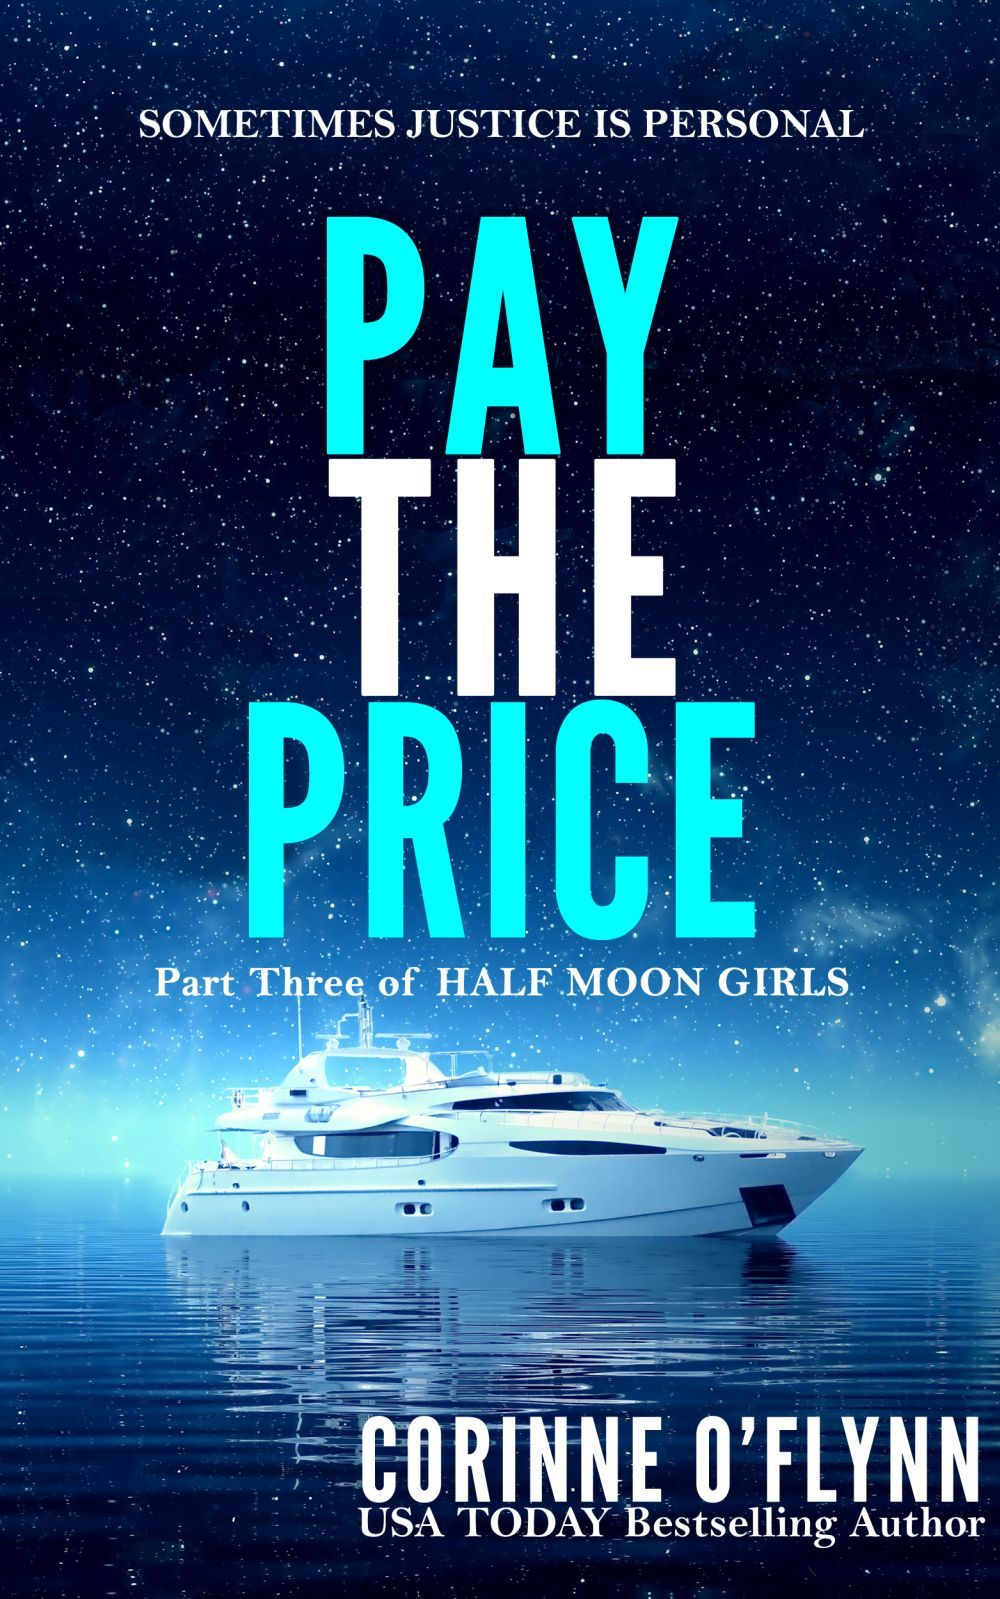 Pay The Price - Kindle World